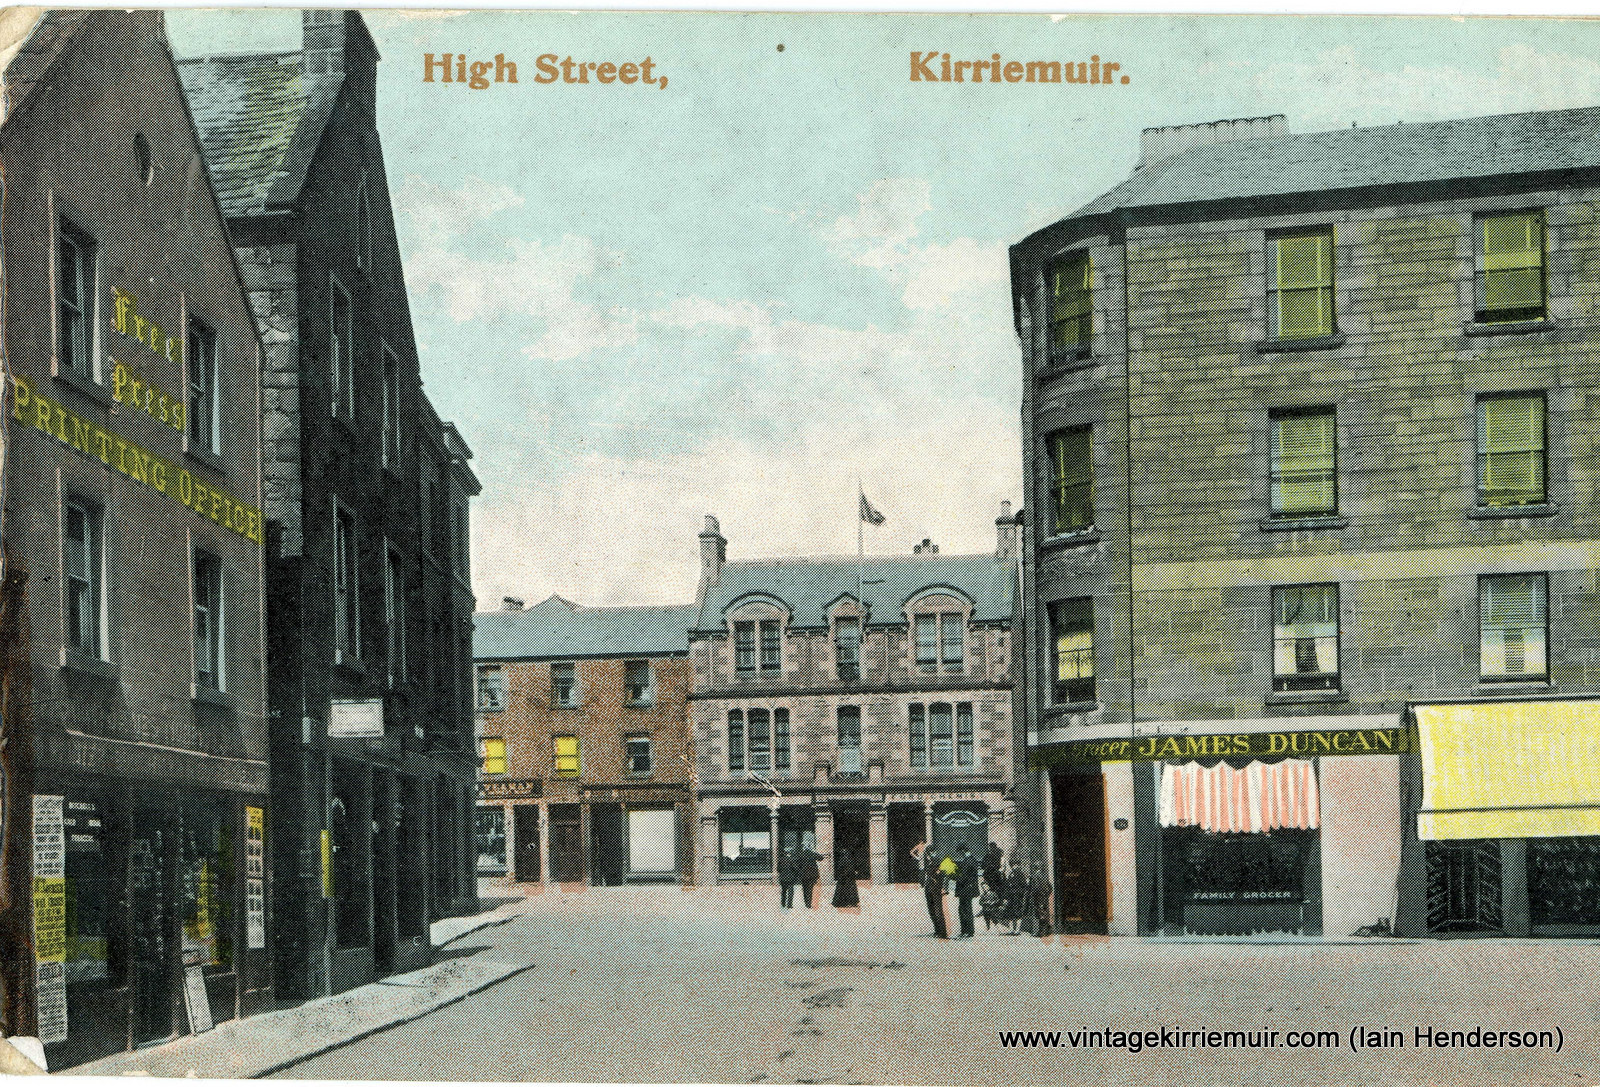 High Street, Kirriemuir, 1907